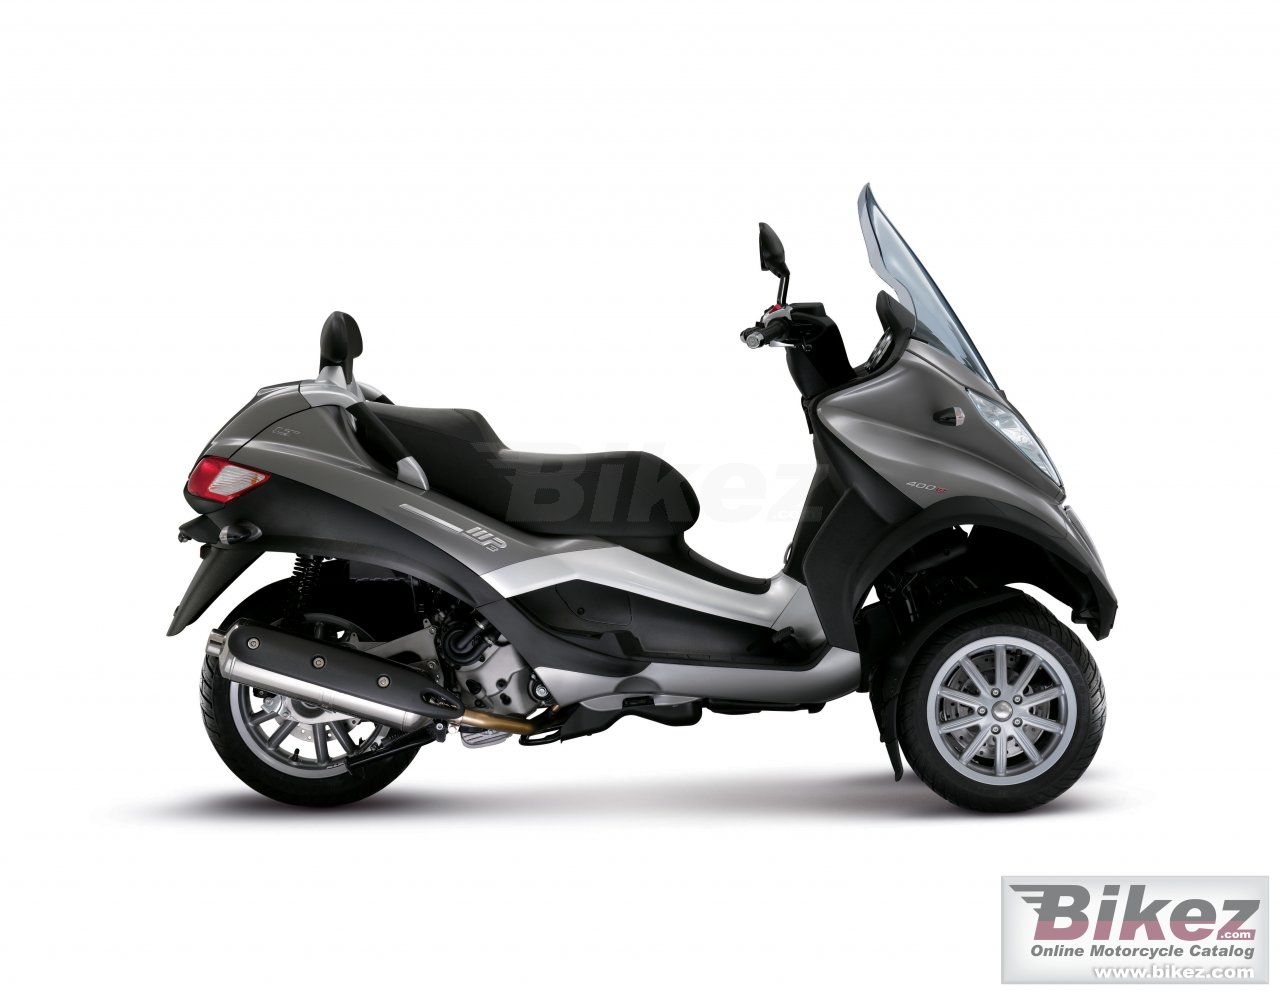 Big Piaggio mp3 lt 400 picture and wallpaper from Bikez.com